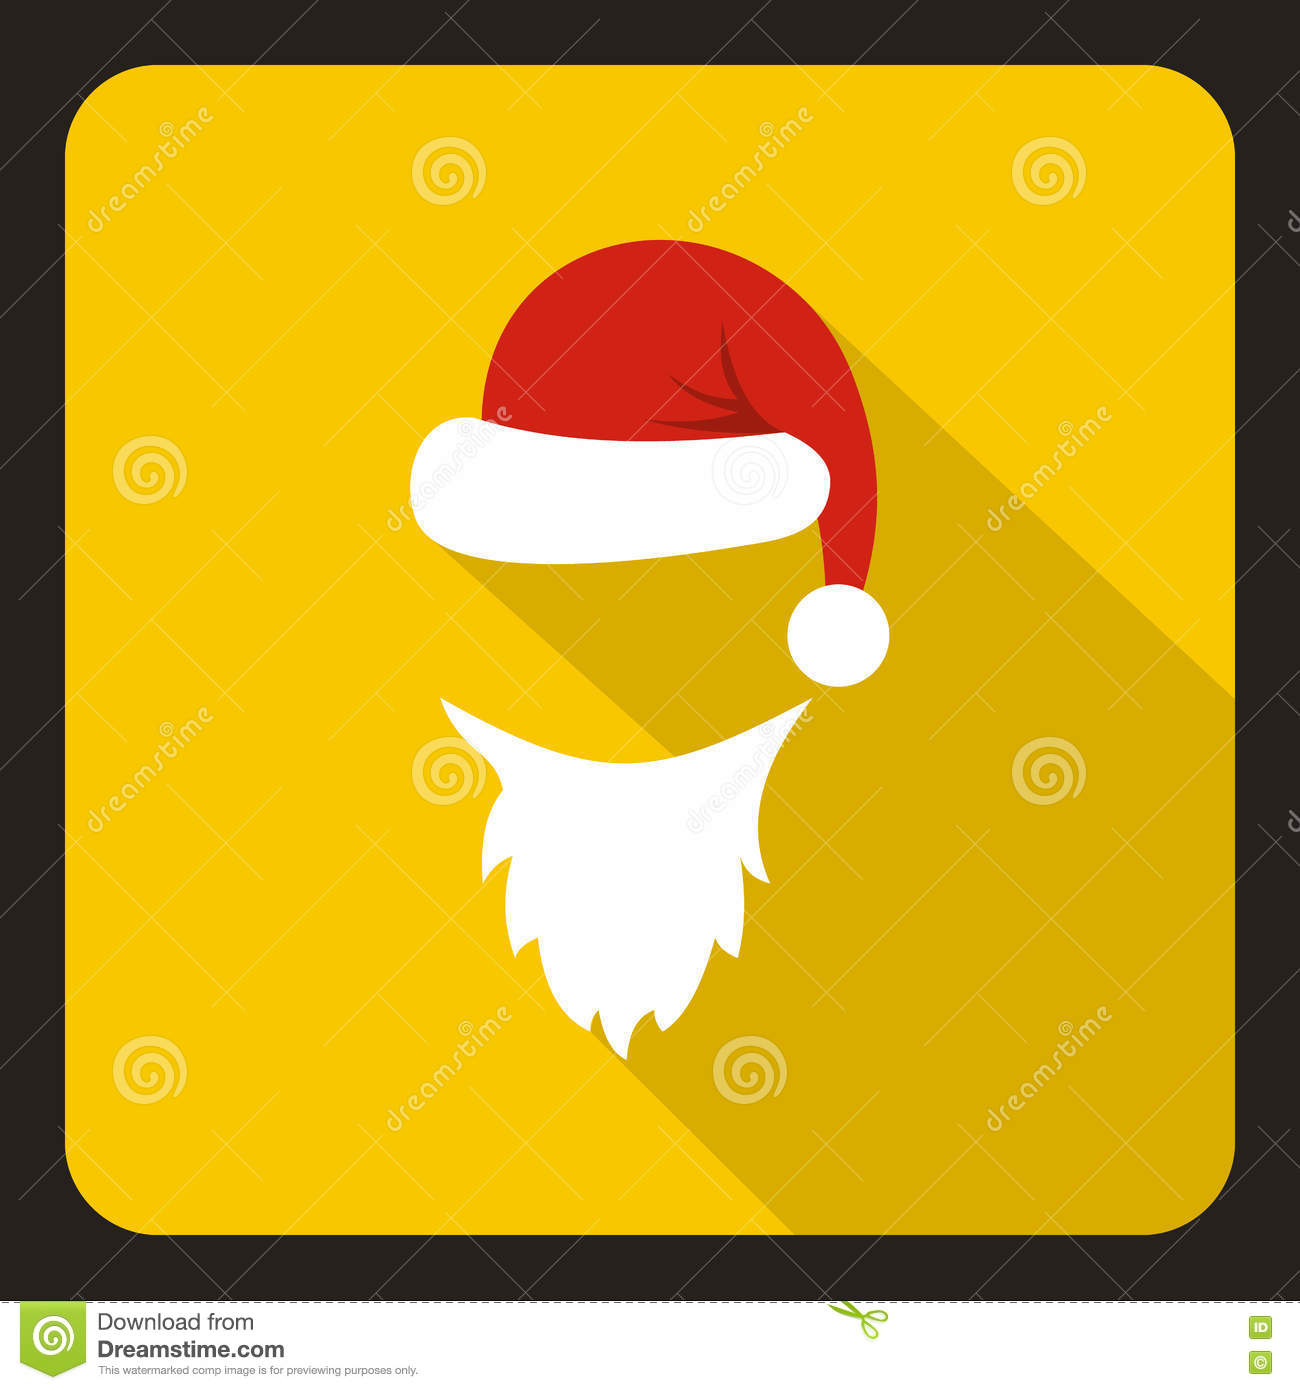 0dcbc76048f Hat and white beard of Santa Claus icon in flat style with long shadow. New  year symbol vector illustration